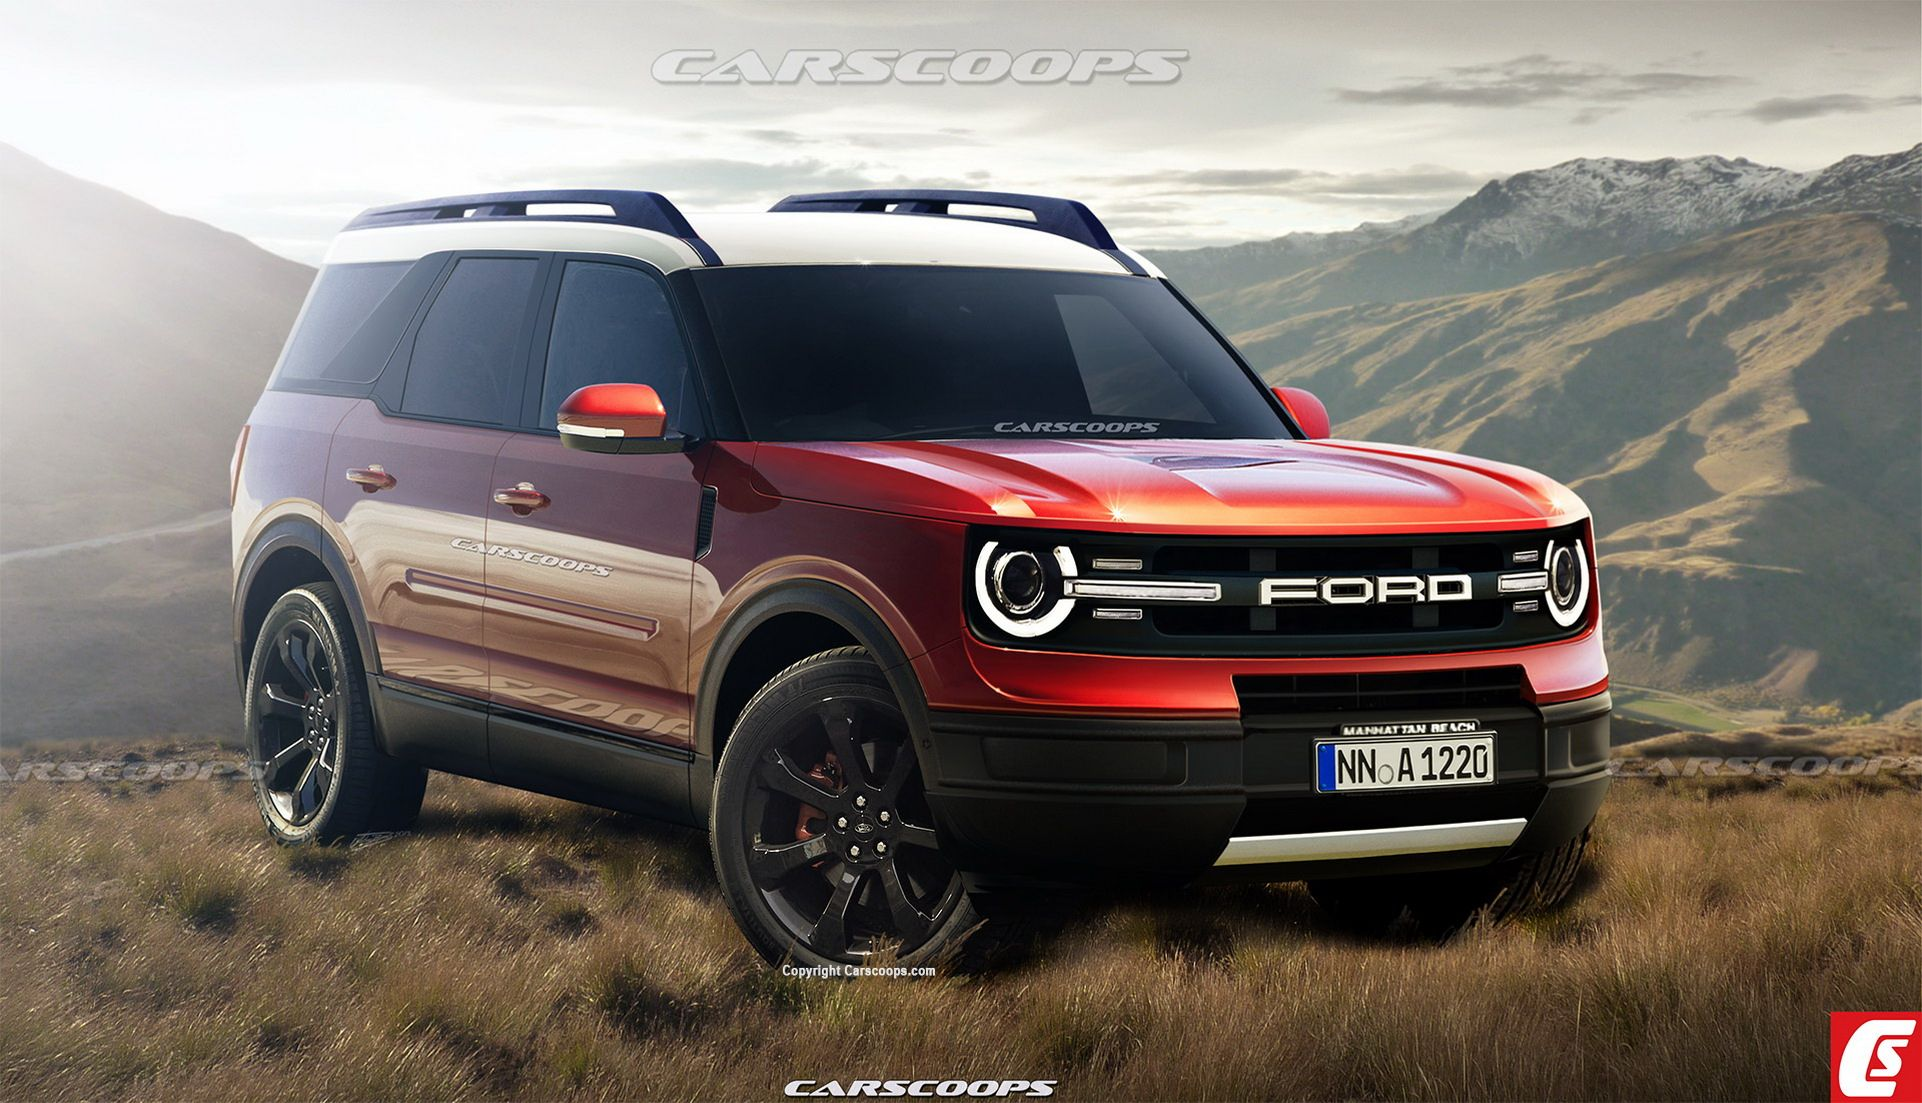 Subaru 2021 Mexico Concept And Review In 2020 Compact Suv Ford Bronco Suv